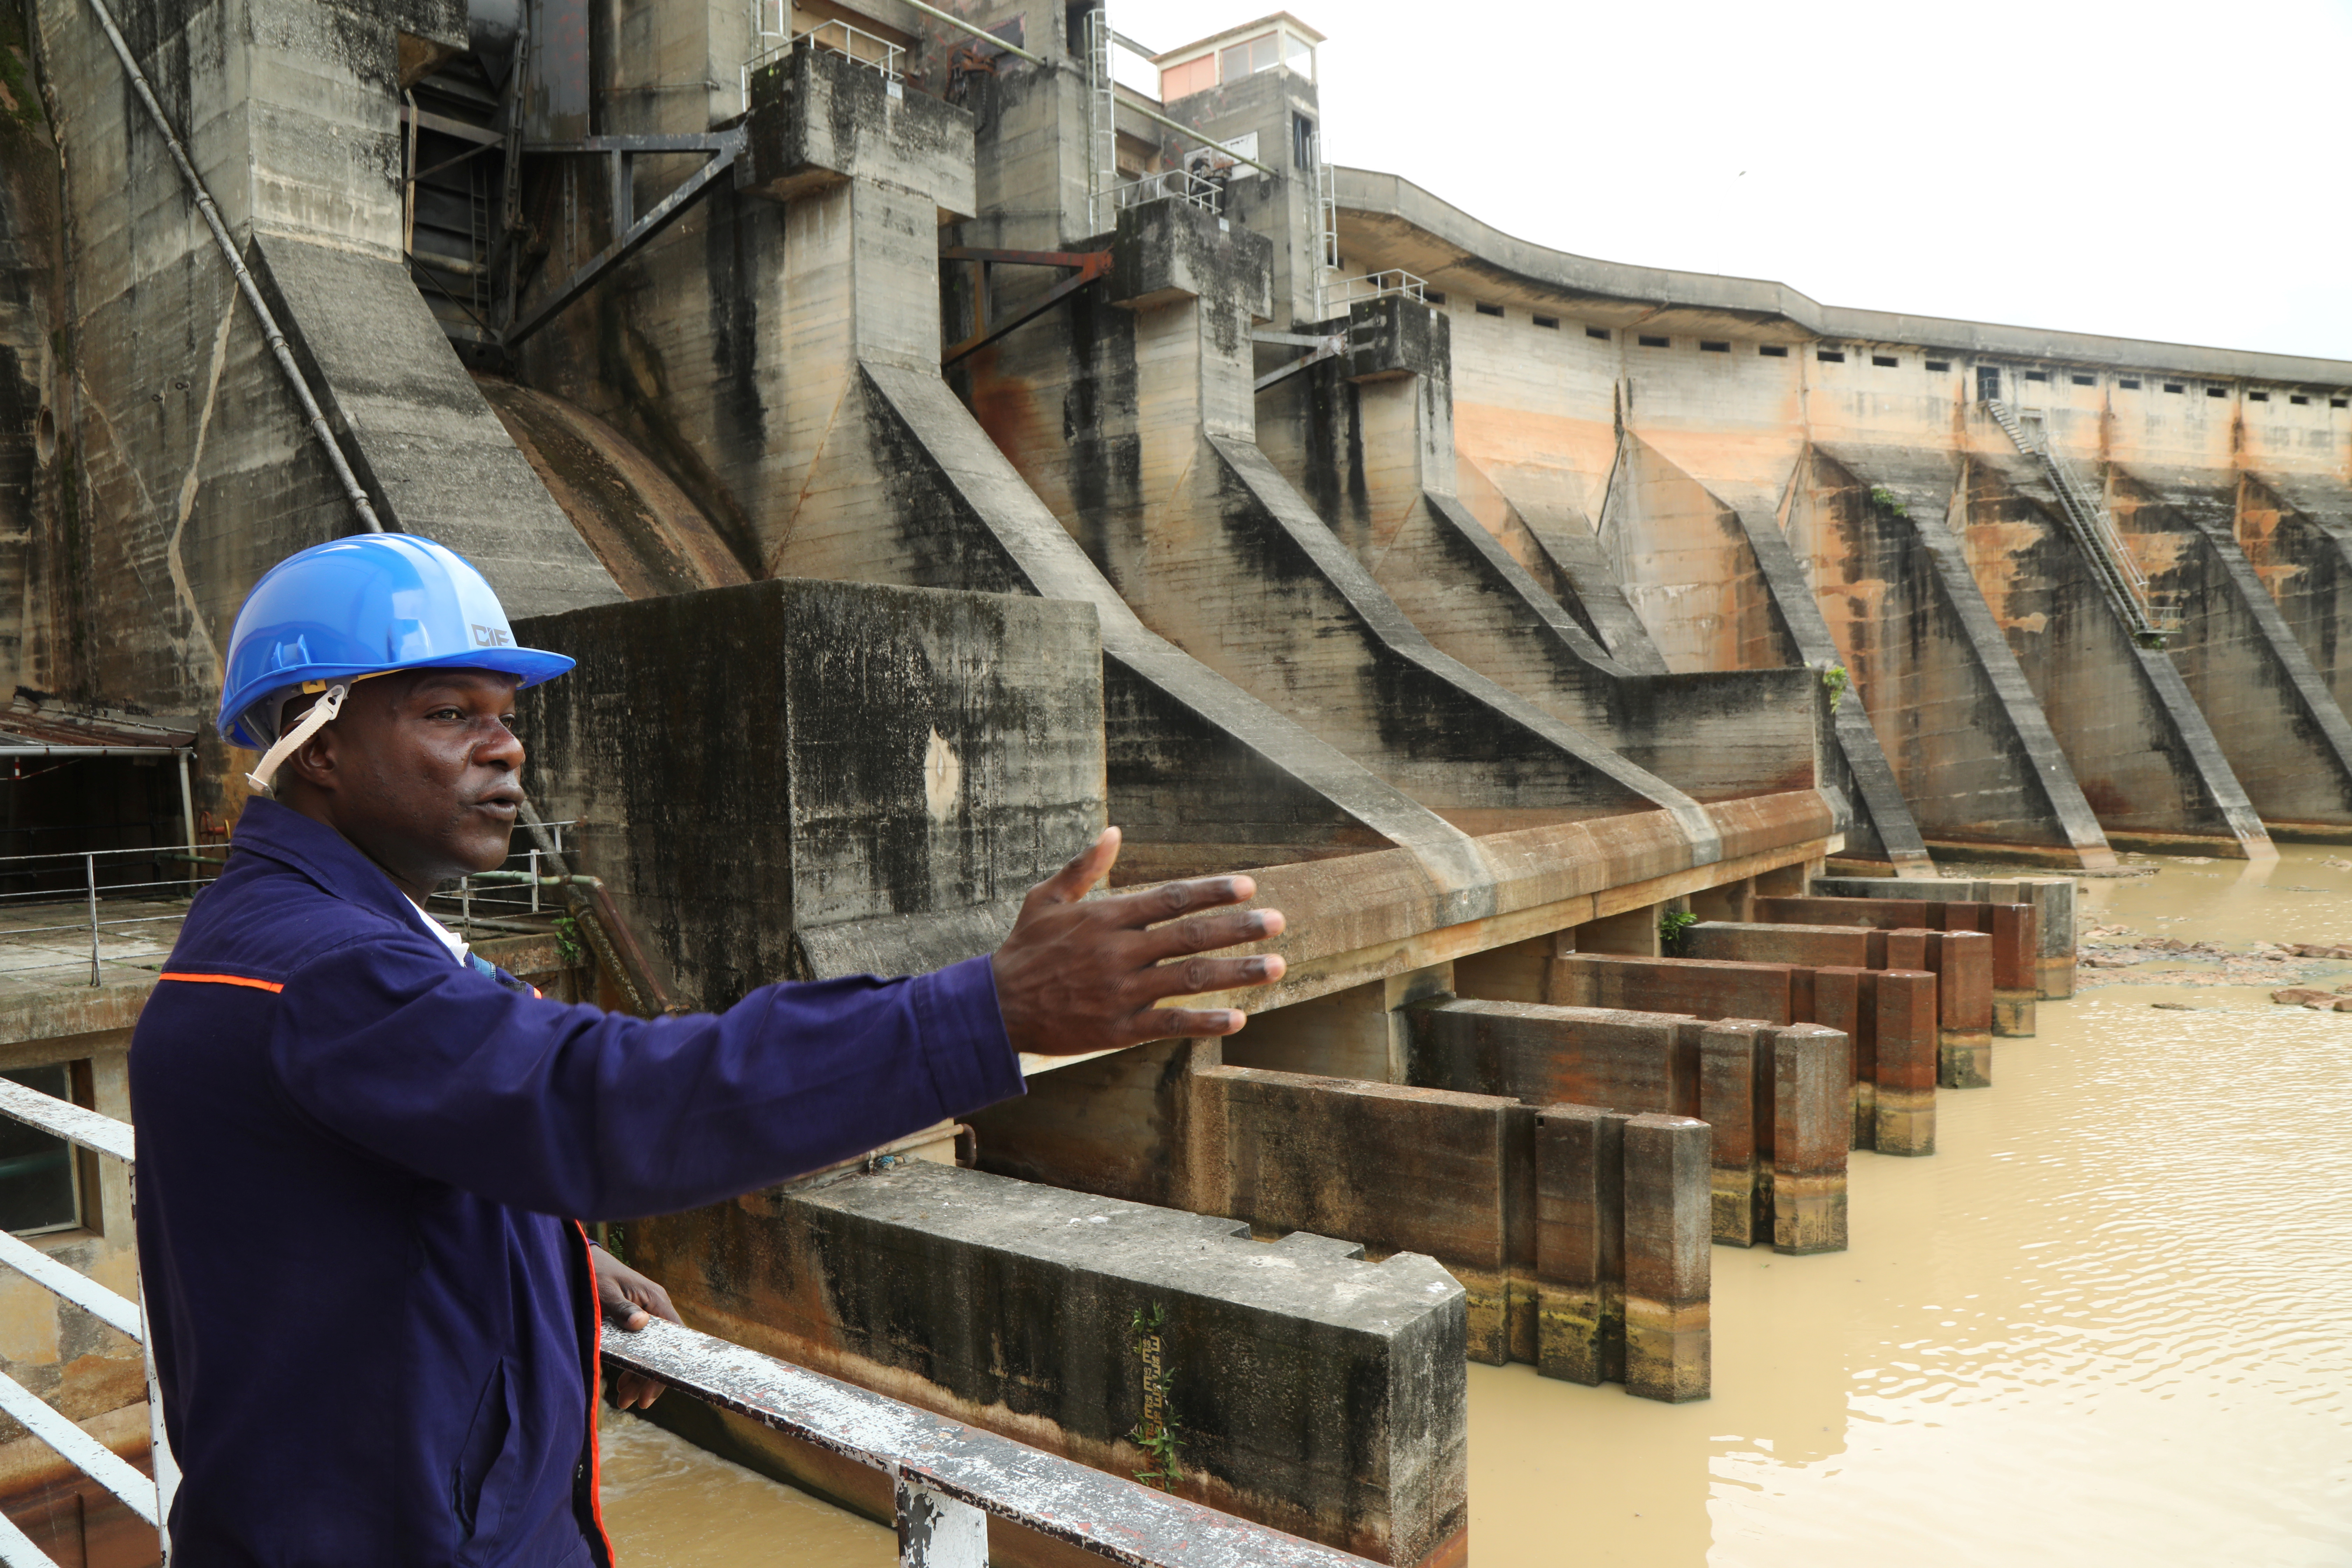 An employee of the Ivory Coast Electricity Company (CIE) works at a hydroelectric dam station in Ayame, Ivory Coast May 6, 2021. Picture taken May 6, 2021. REUTERS/Luc Gnago